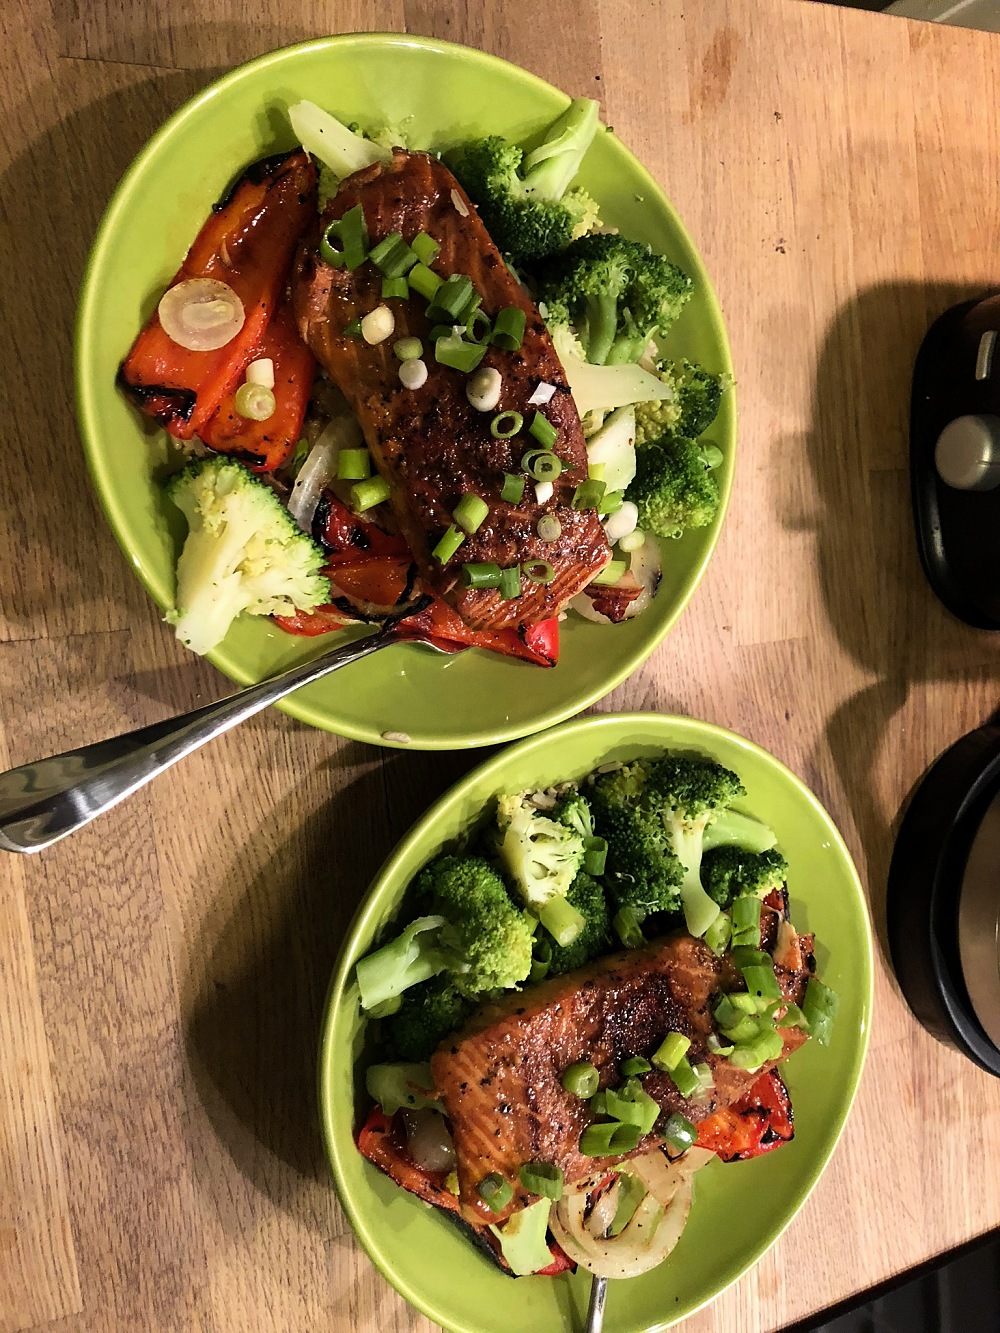 Teriyaki salmon bowls with broccoli and peppers